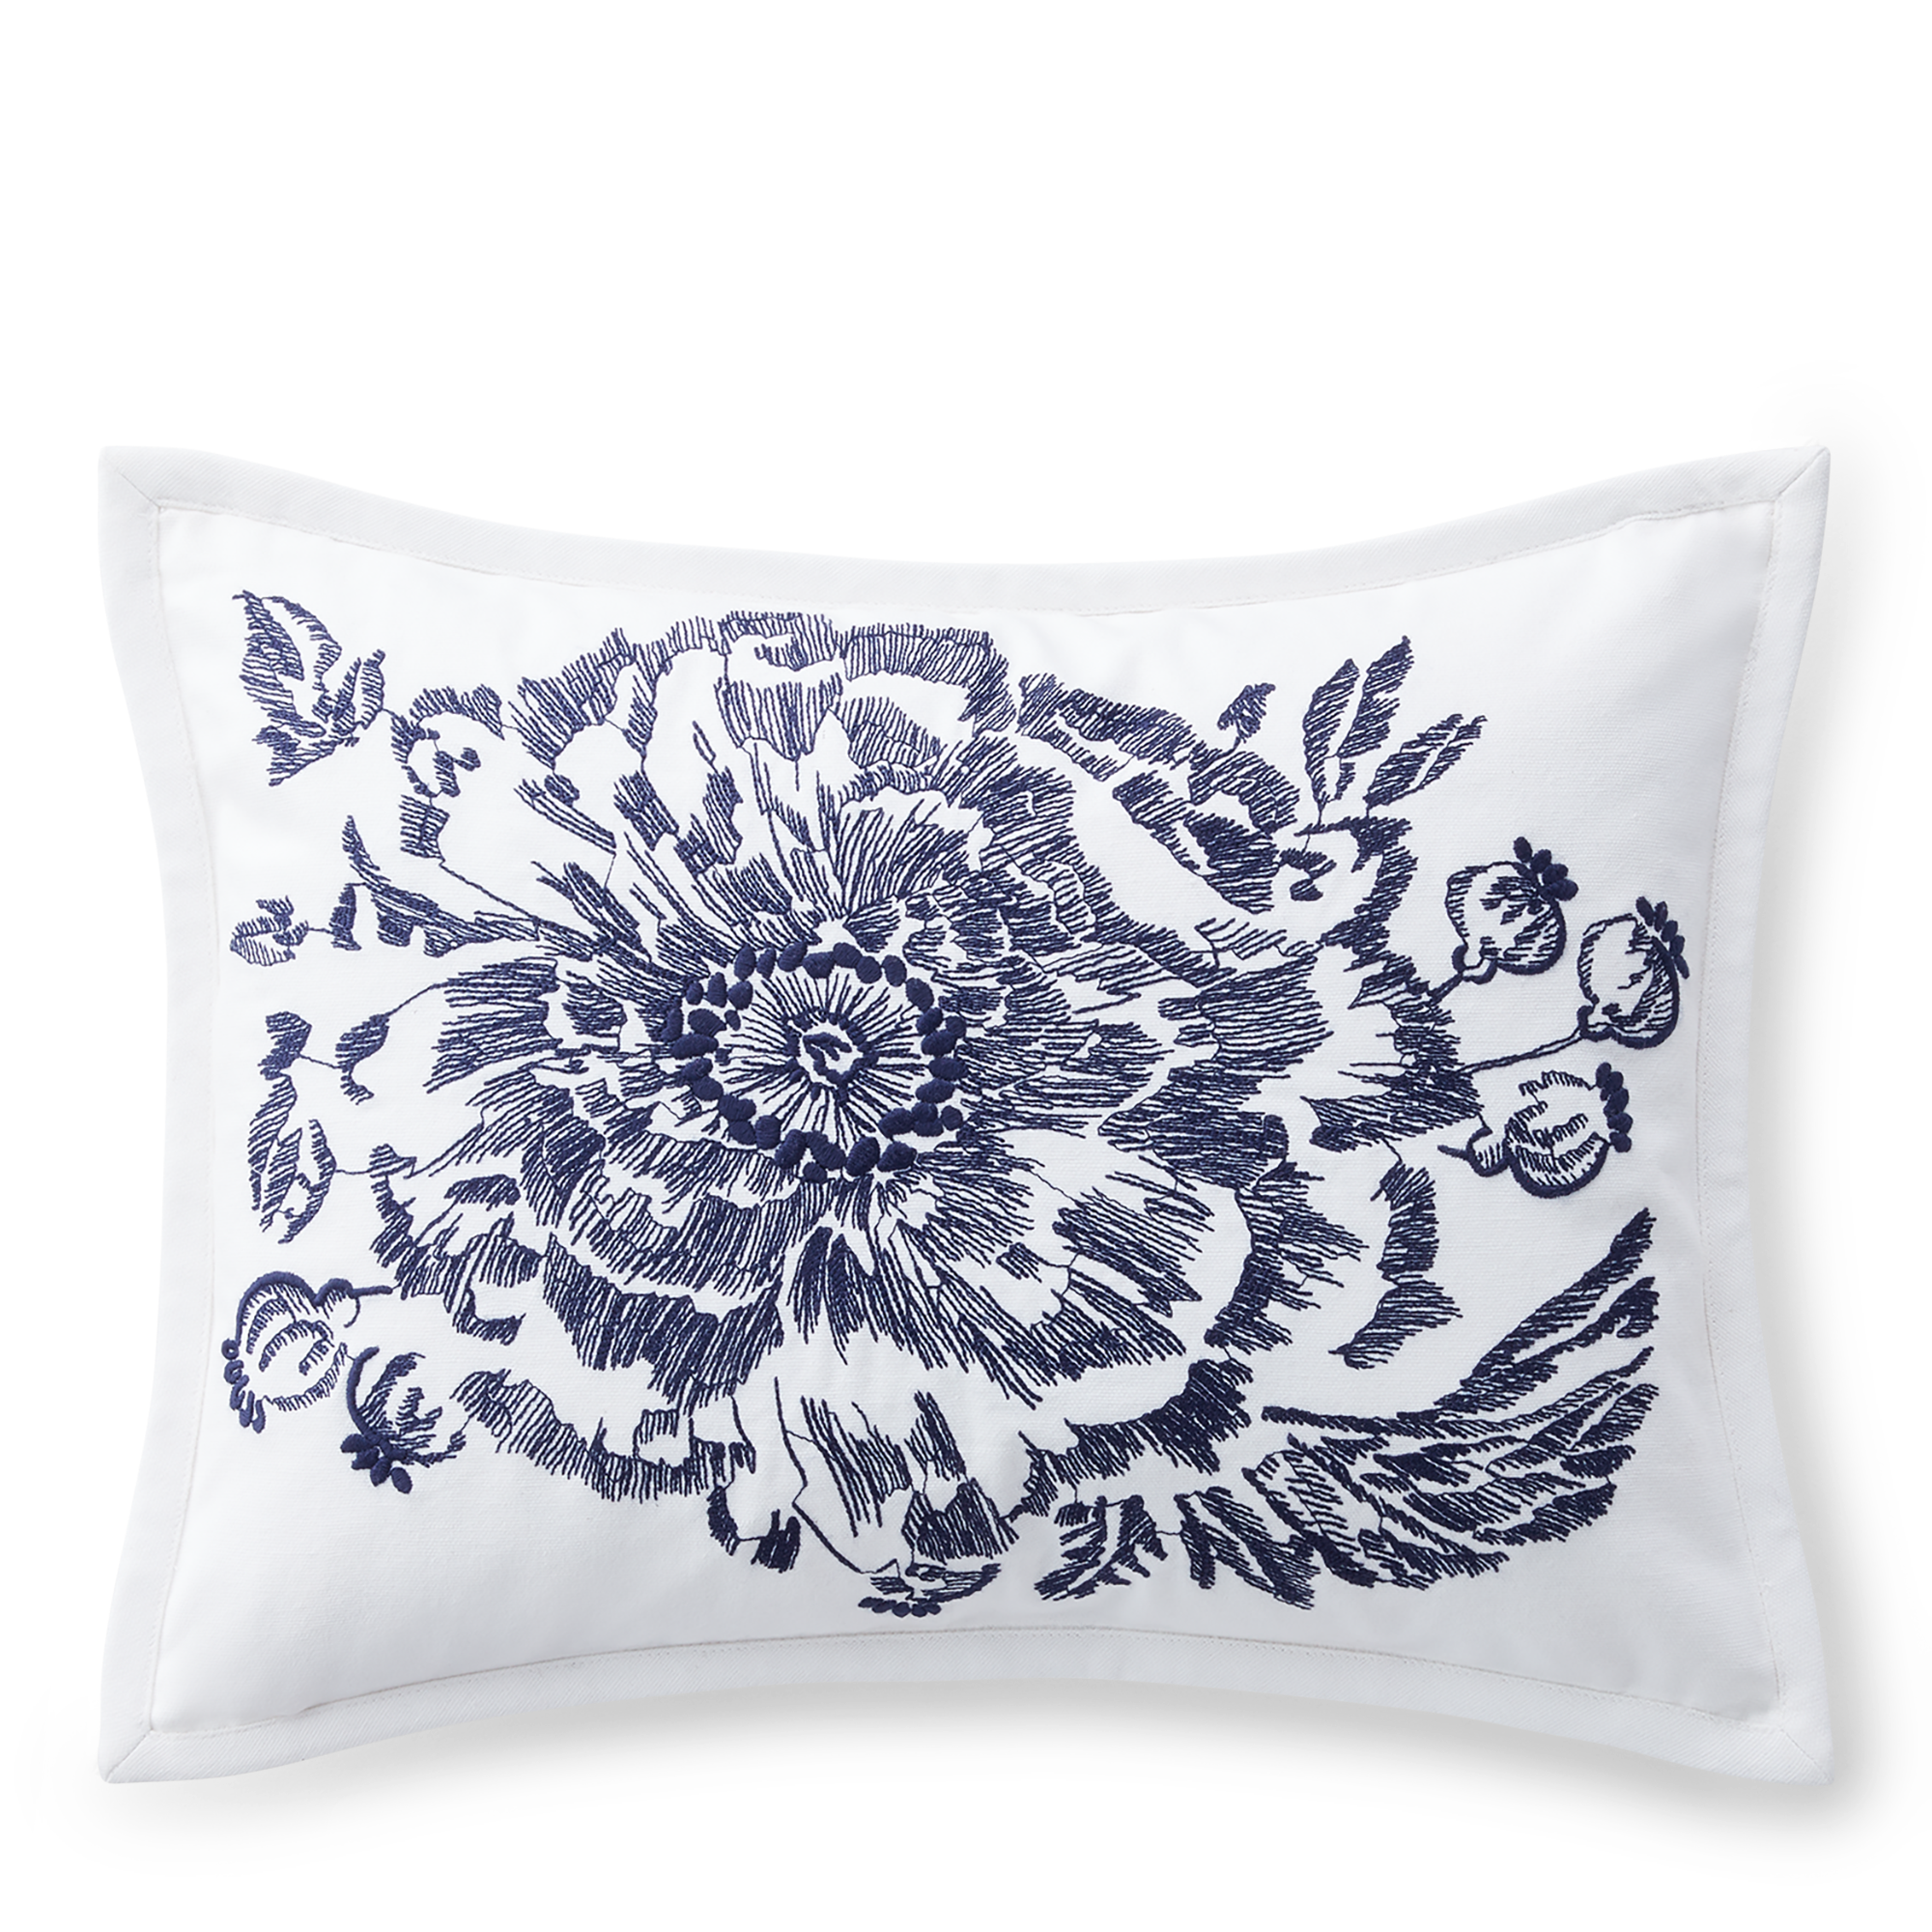 Produt Image 00 Home Bedding Throw Pillows